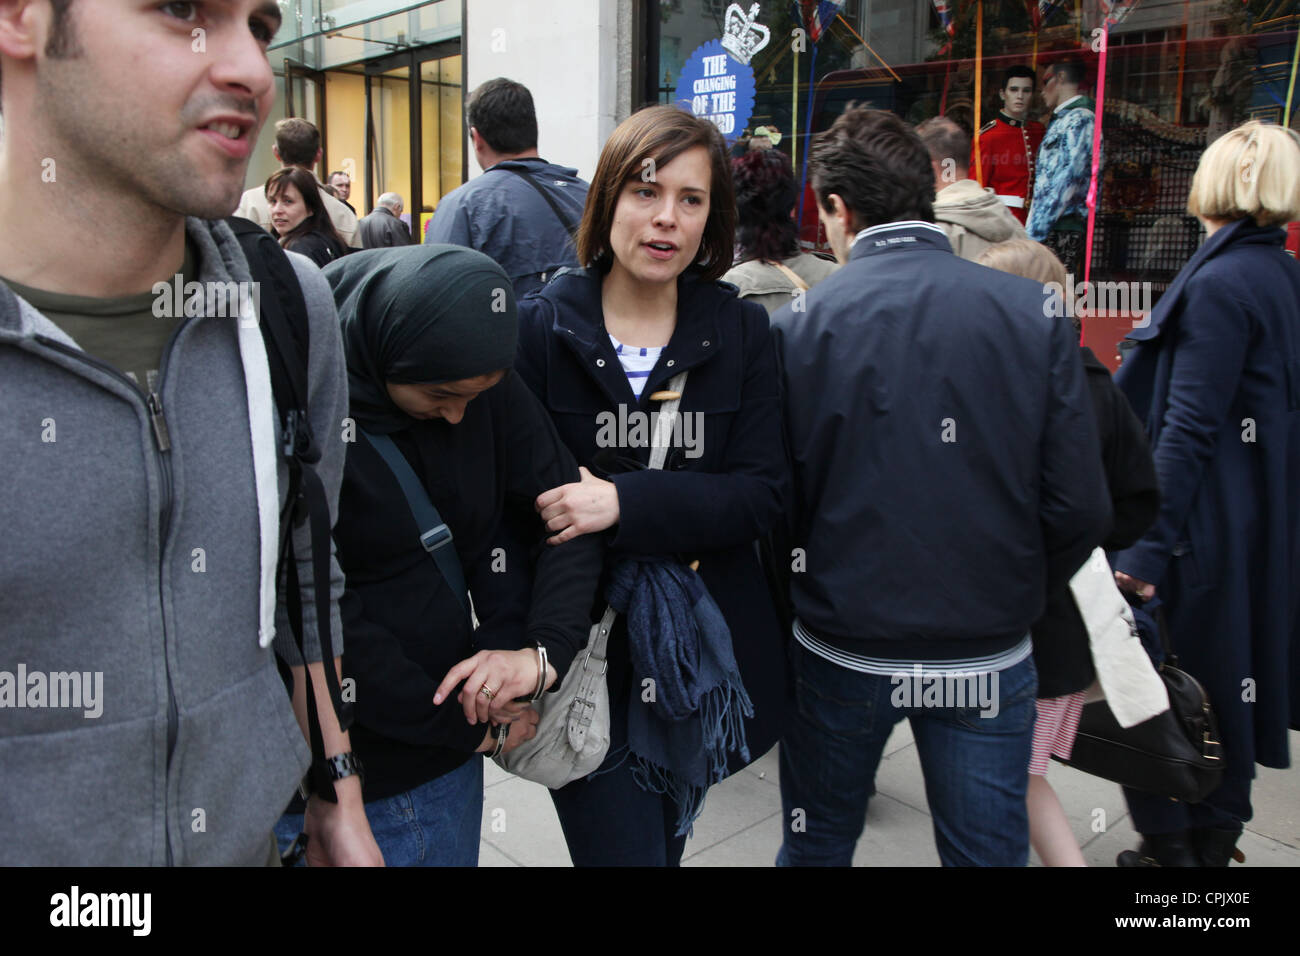 A woman is marched away by an undercover police officer to be arrested for begging in London's West End - Stock Image